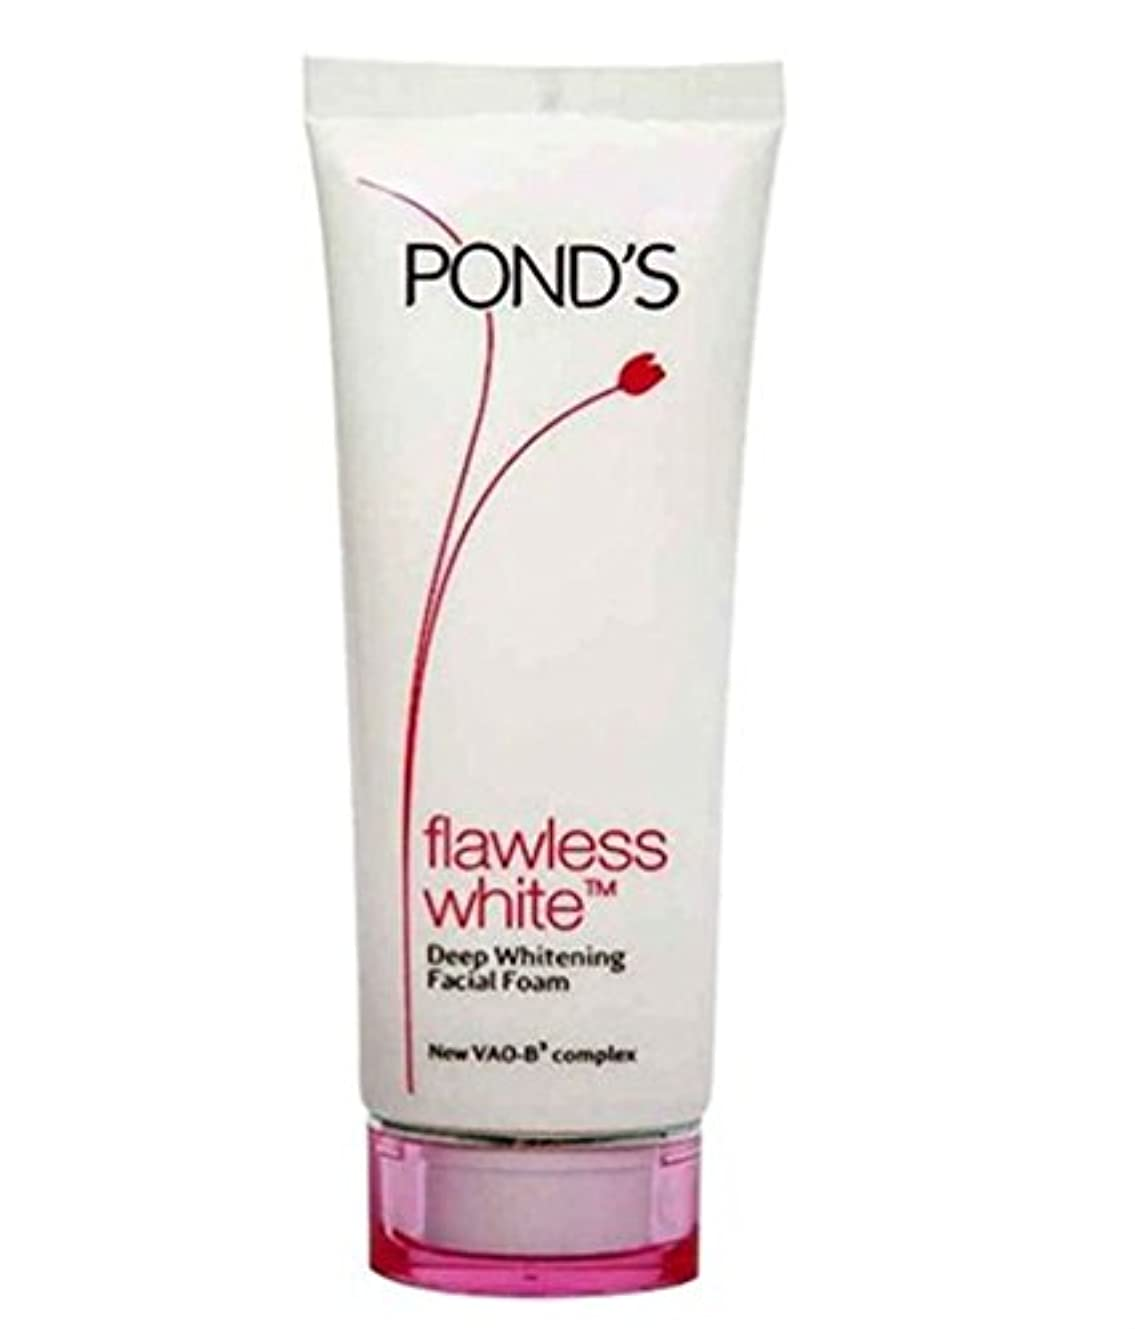 ベーシック帰る肉のPond's Flawless White Deep Whitening Facial Foam, 100g